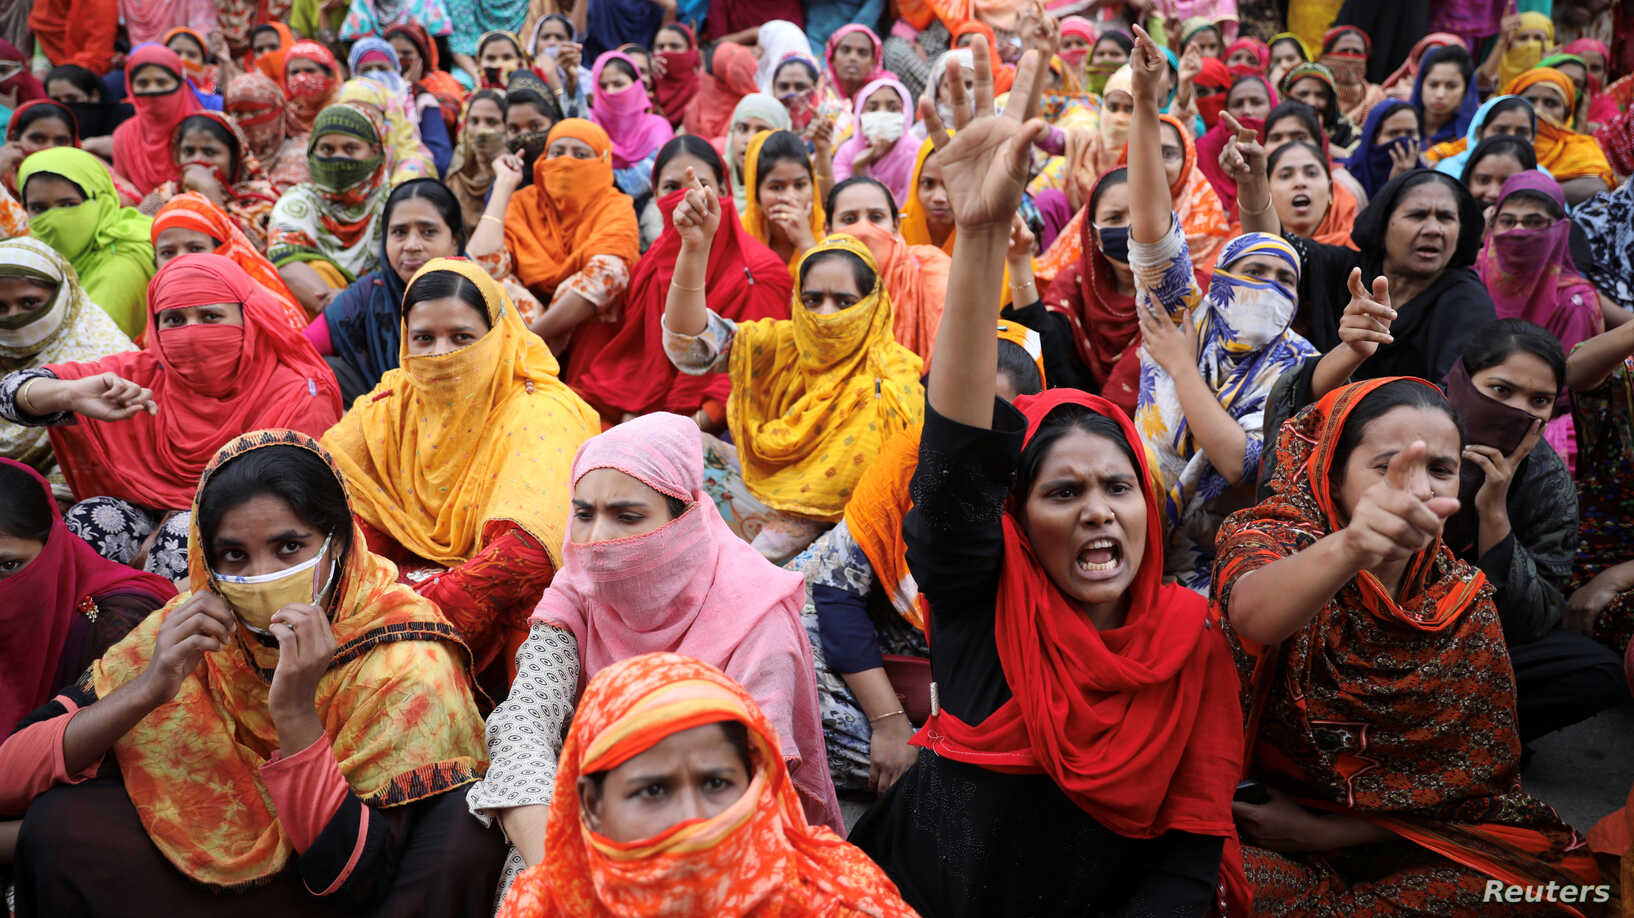 Garment workers protest for higher wages in Dhaka